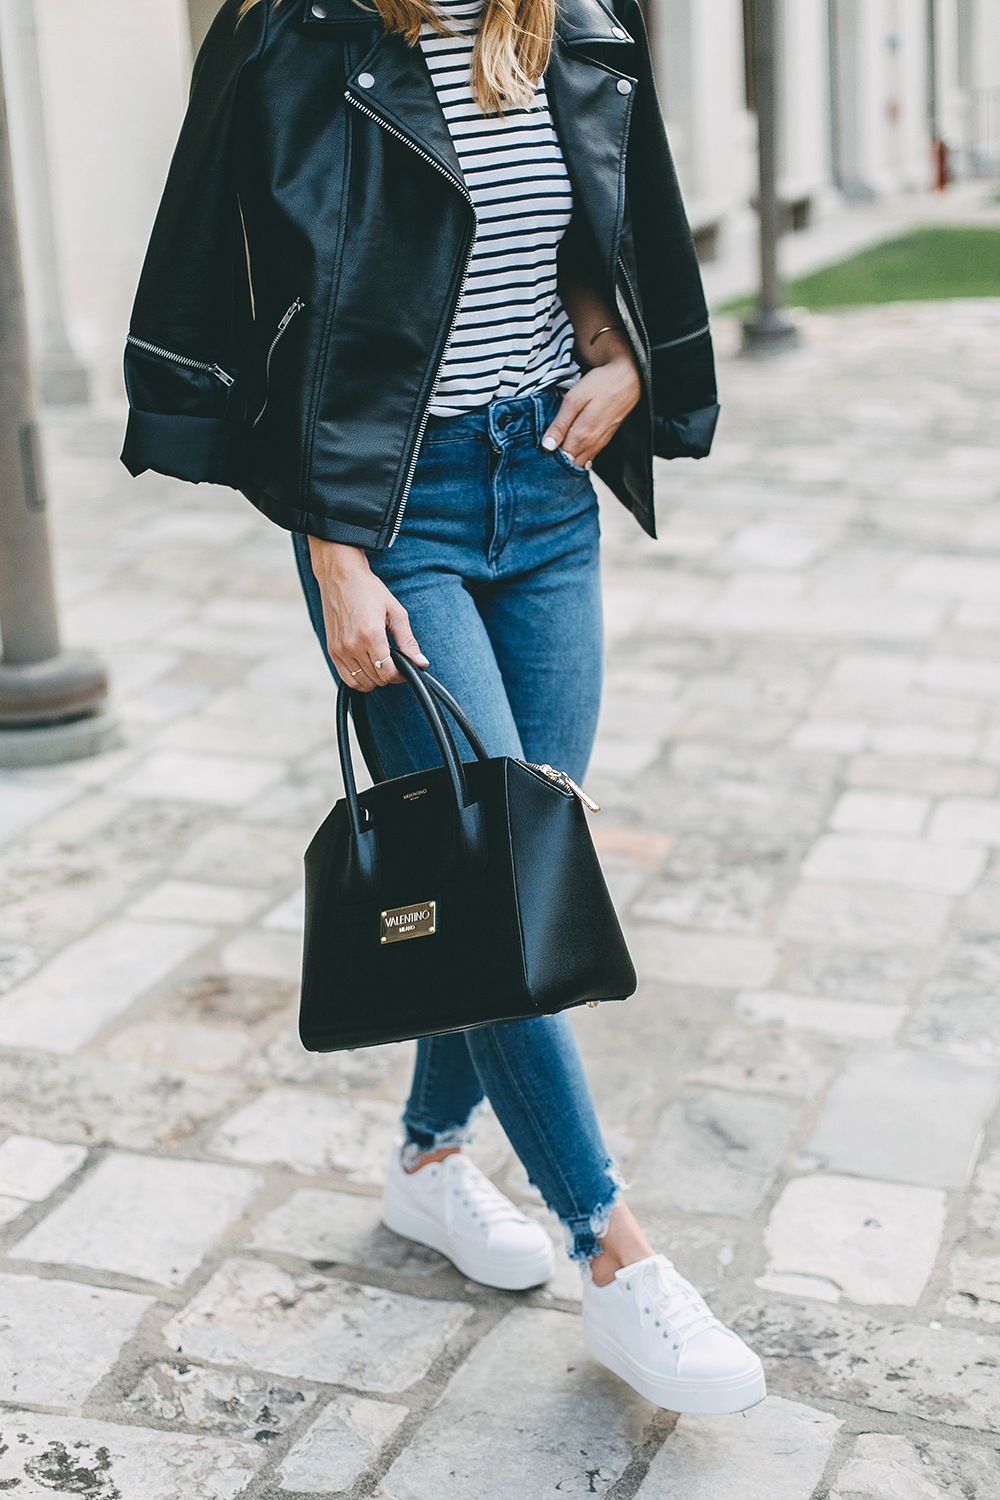 livvyland-blog-olivia-watson-stripe-top-leather-moto-jacket-platform-sneakers-16